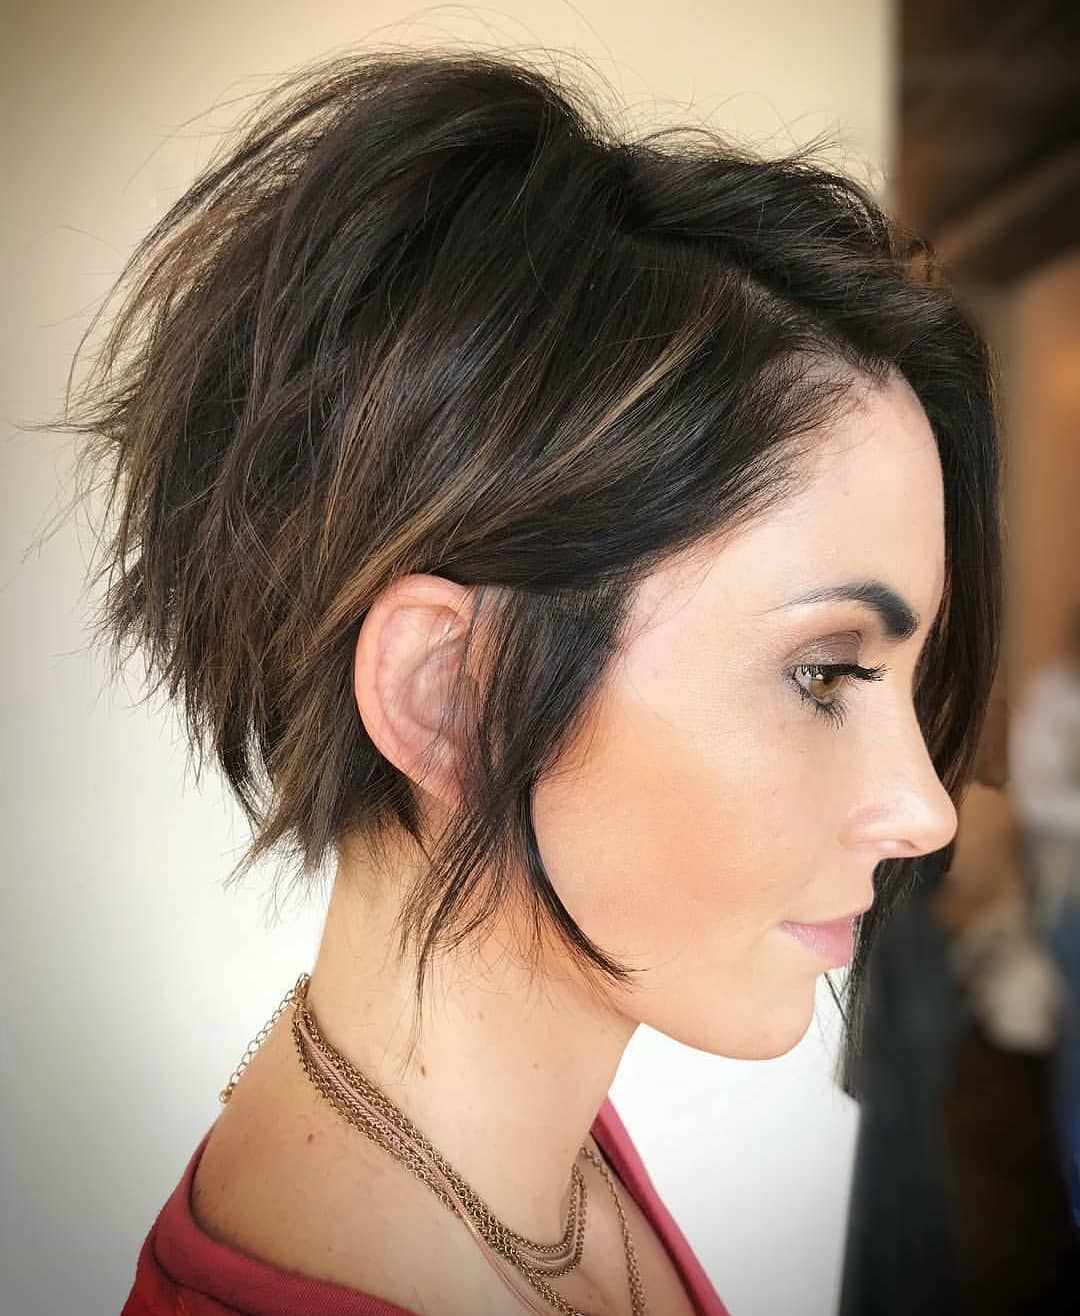 easy haircut styles 10 fab hairstyles with texture amp color 2019 hair 5886 | 72dc634caebfbfeacee17b9a391a0145